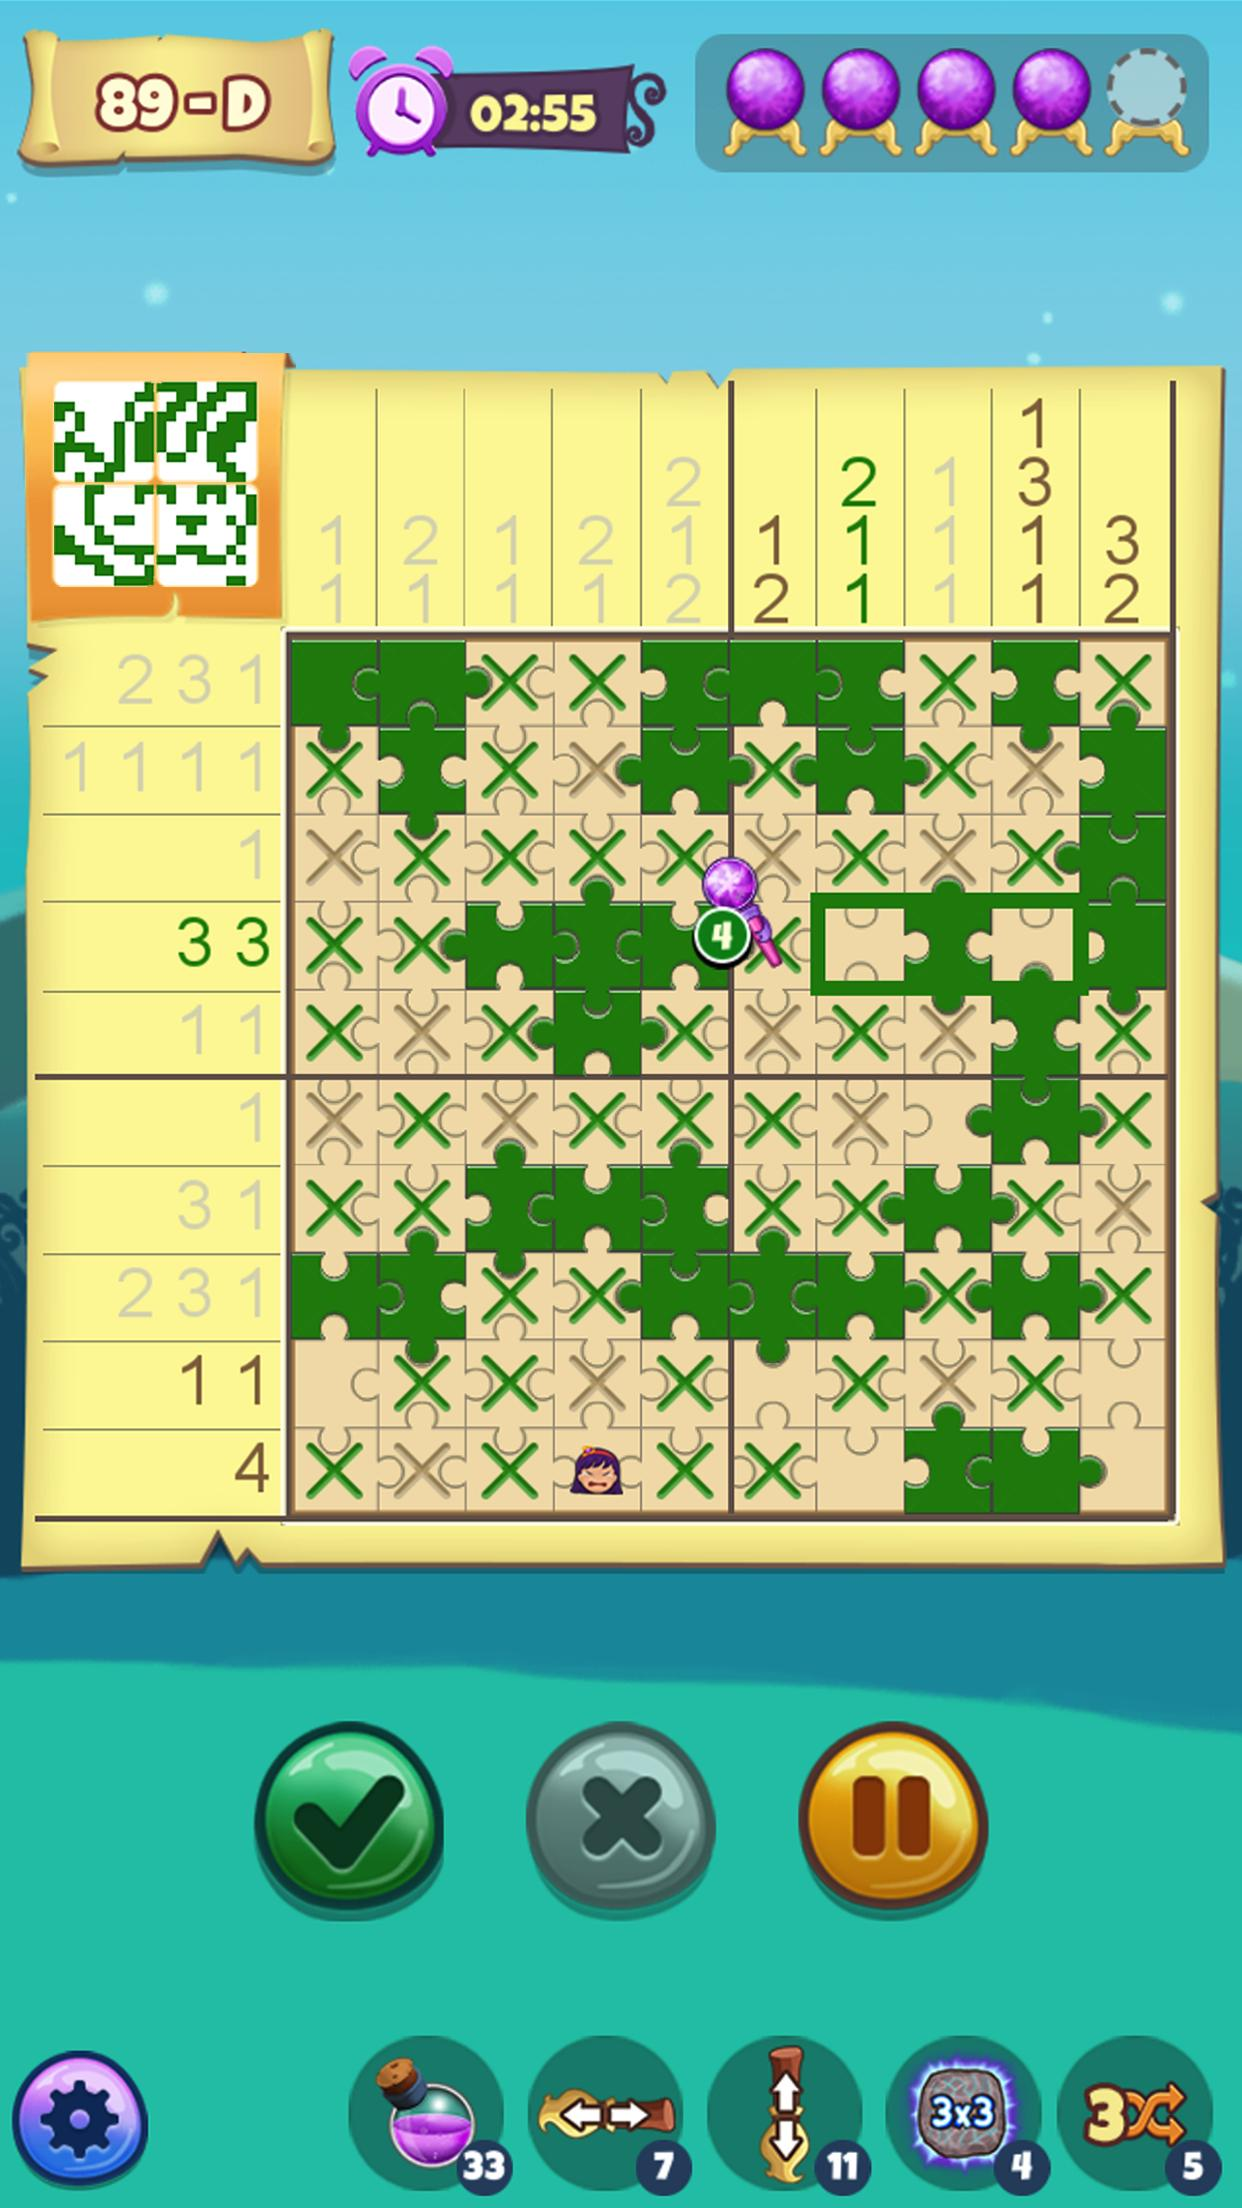 The Mystic Puzzland - Griddlers & Nonogram Puzzles 1.0.26 Screenshot 11